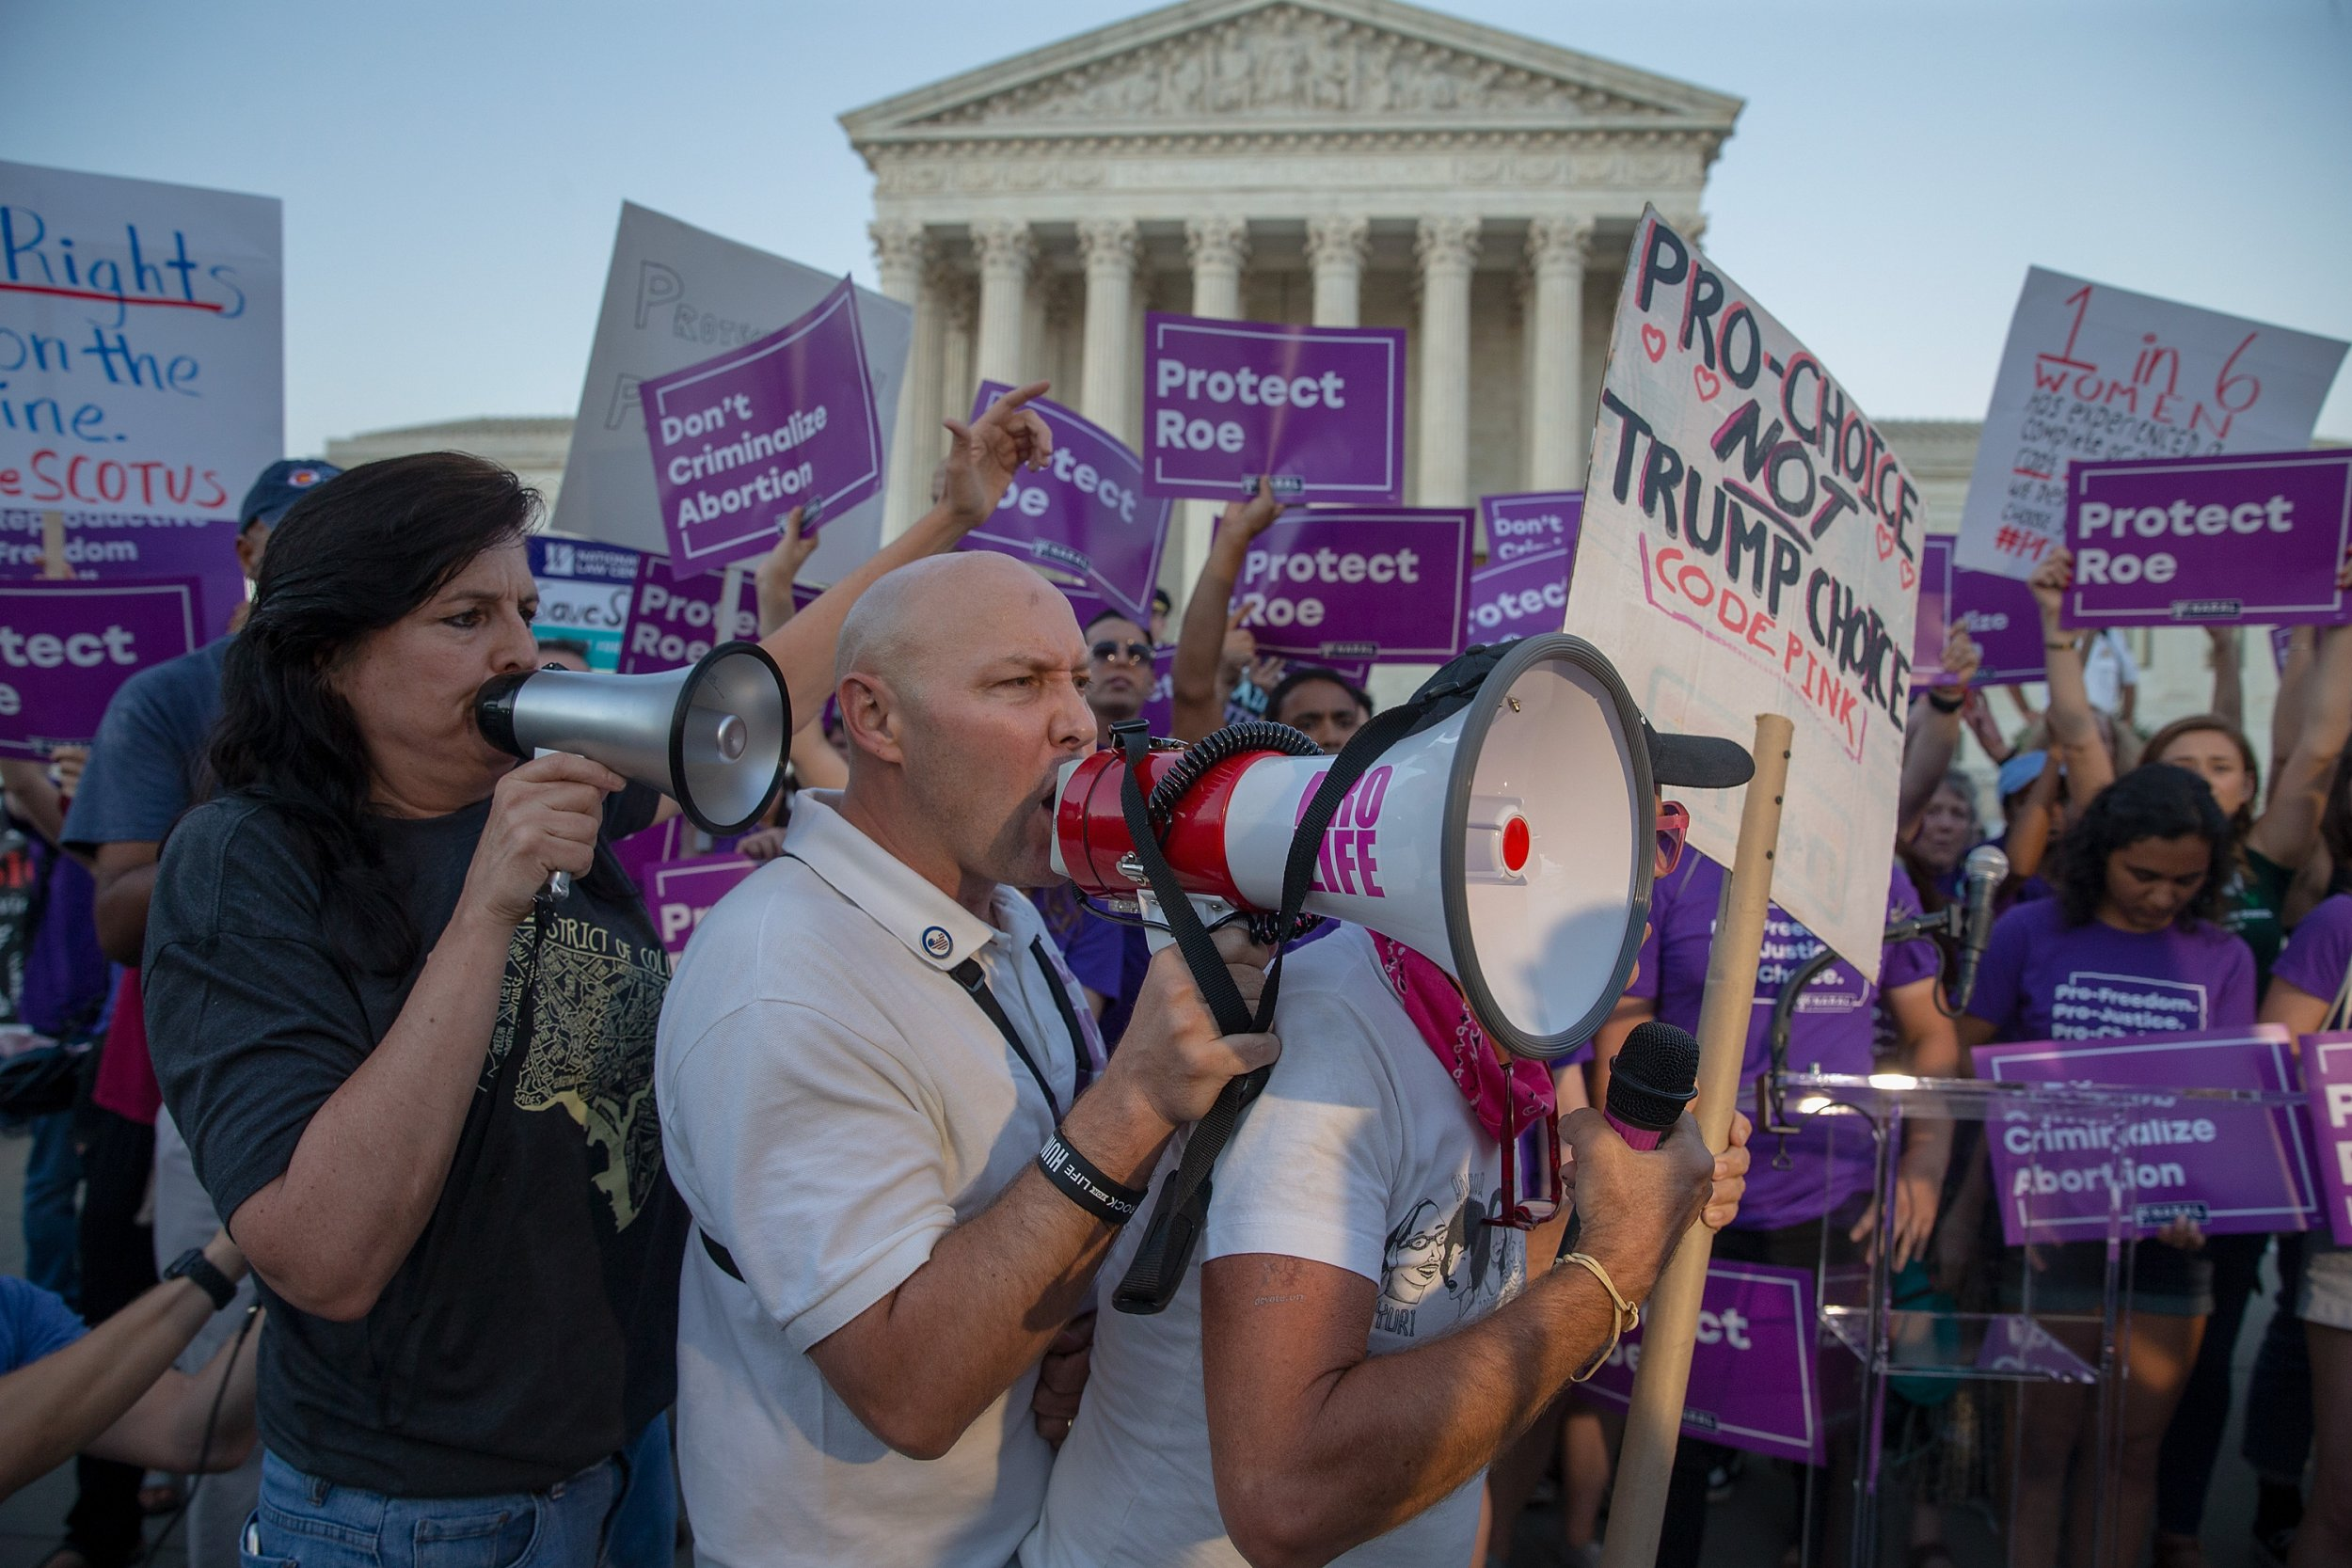 Alabama, West Virginia Voters Approve Anti-Abortion Amendments In Hopes Roe V. Wade Will Be Overturned